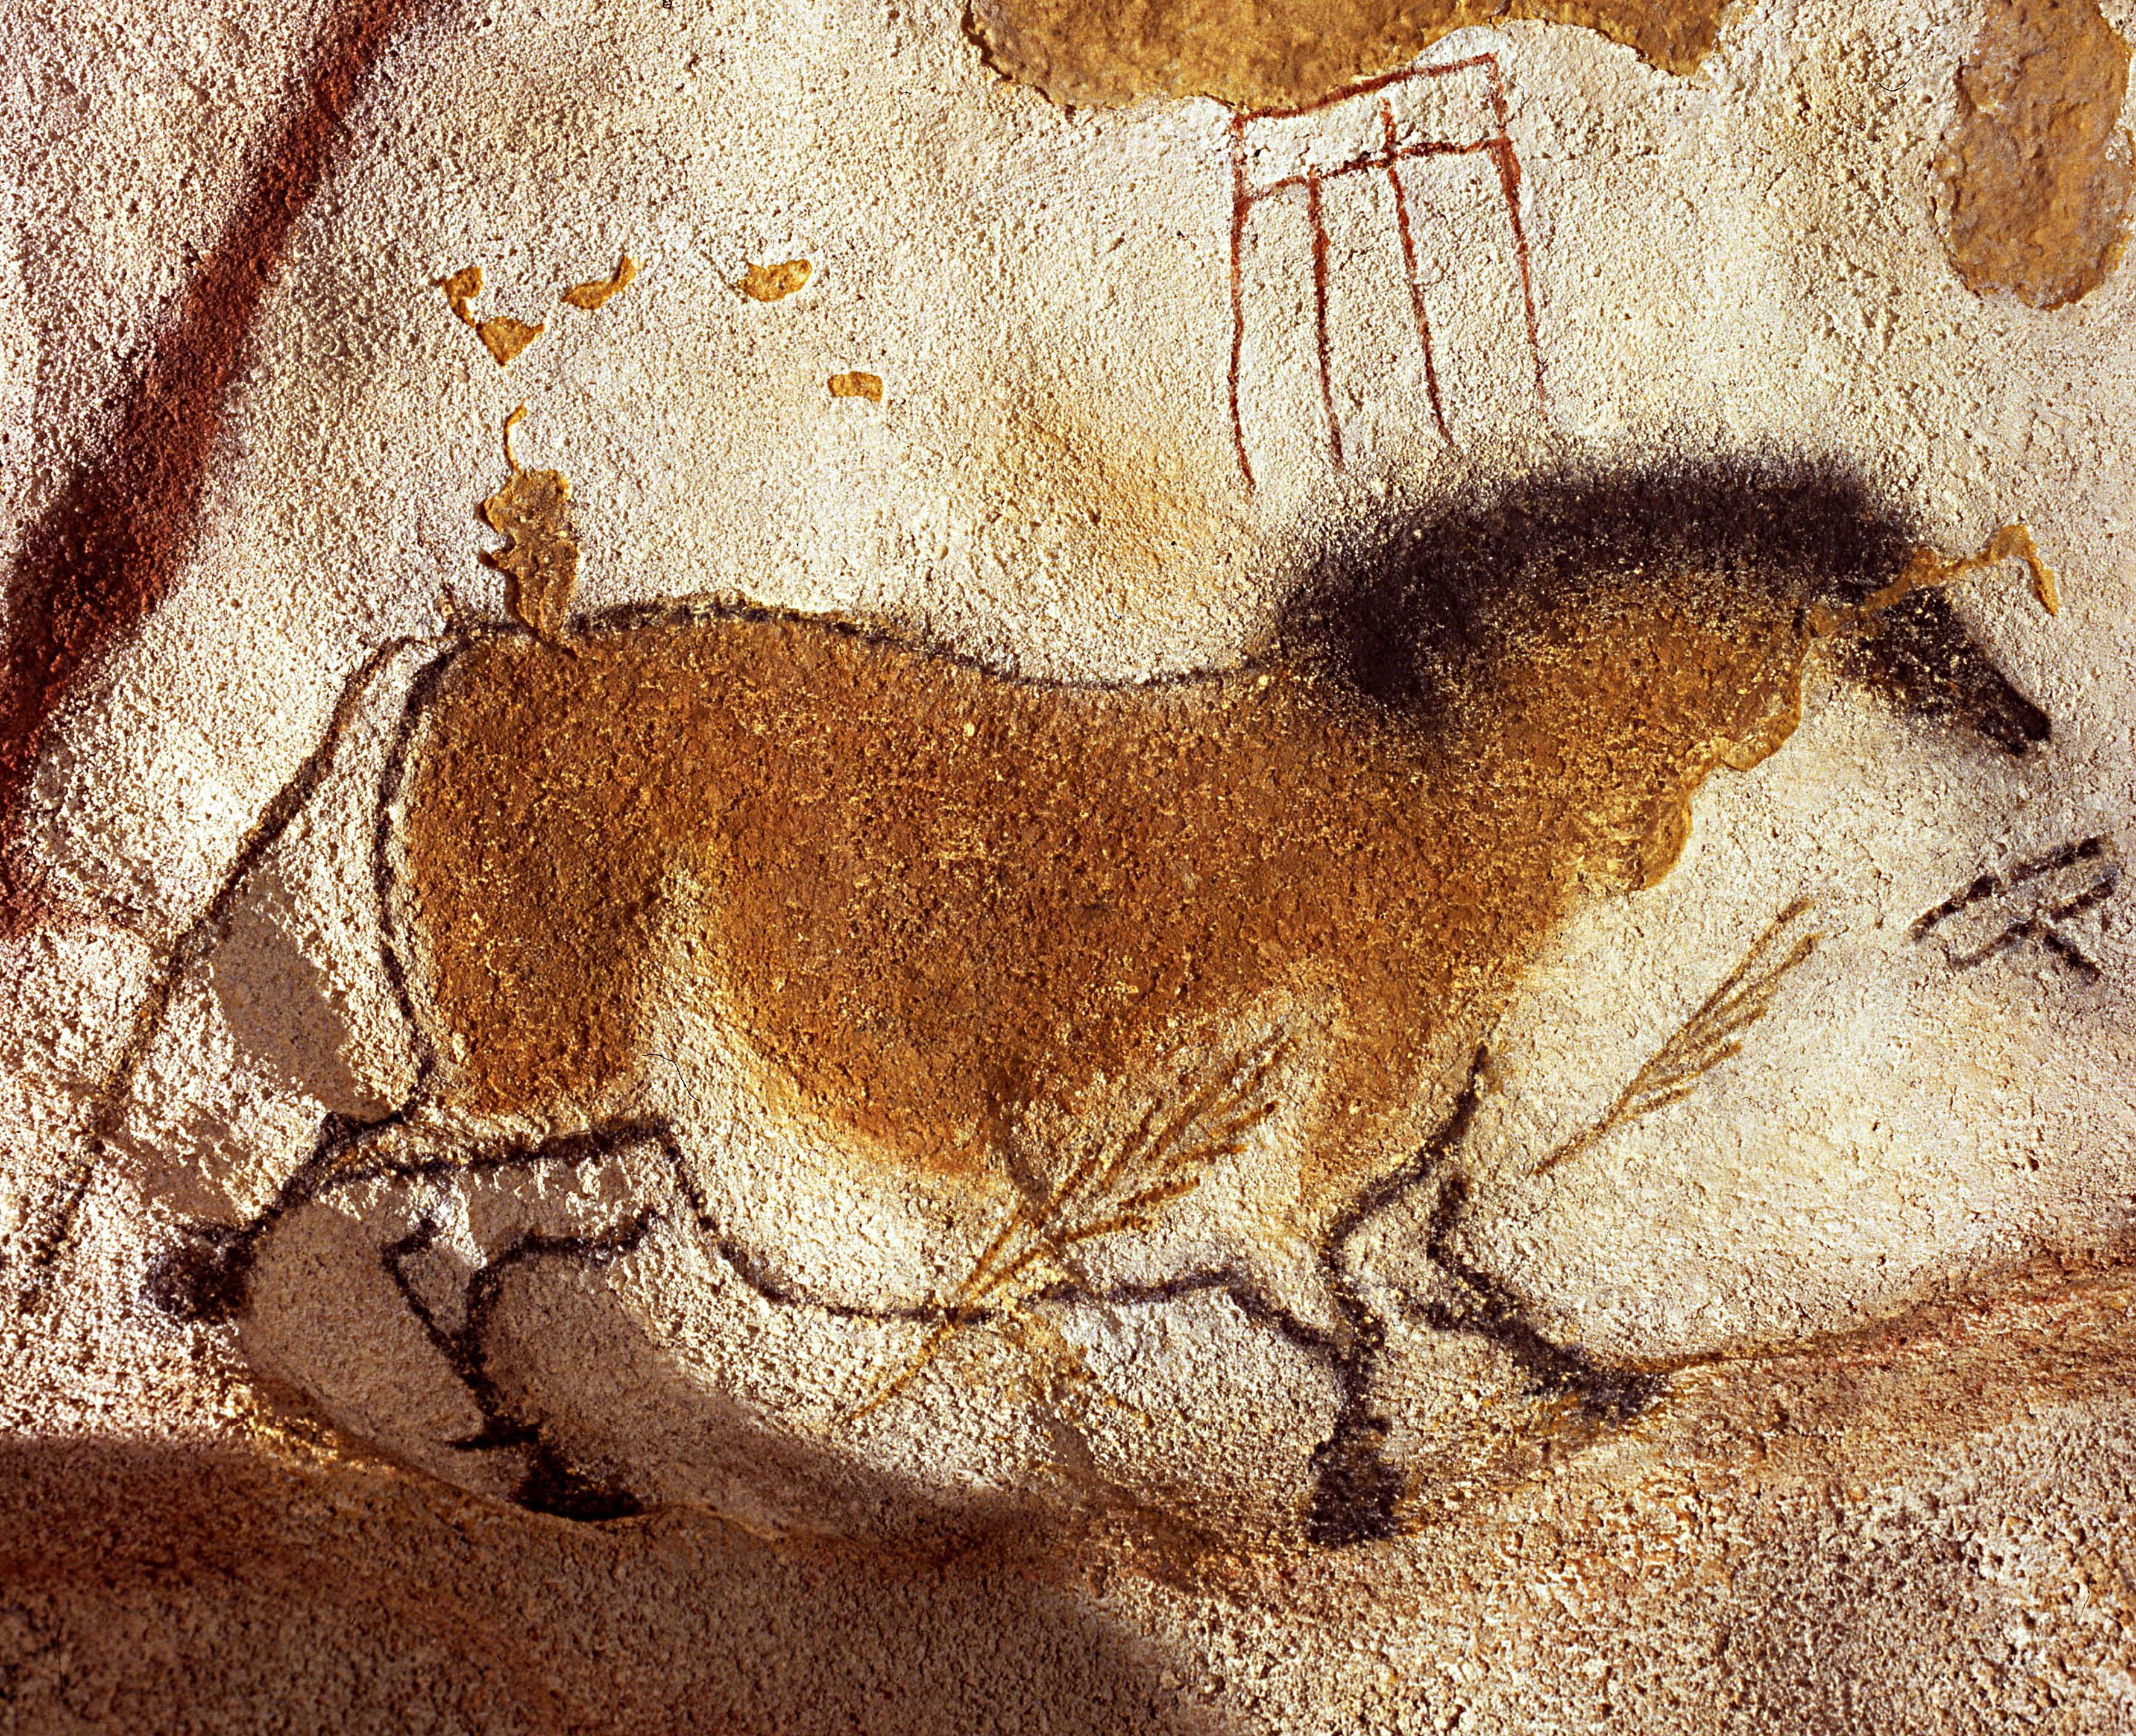 an analysis of the art the cave in lascaux Lascaux cave synonyms, lascaux cave pronunciation, lascaux cave  stencils  rival age of europe's cave art: handprints in indonesia were created nearly  40,000 years ago  guided cave interpretation: principles from the profession.